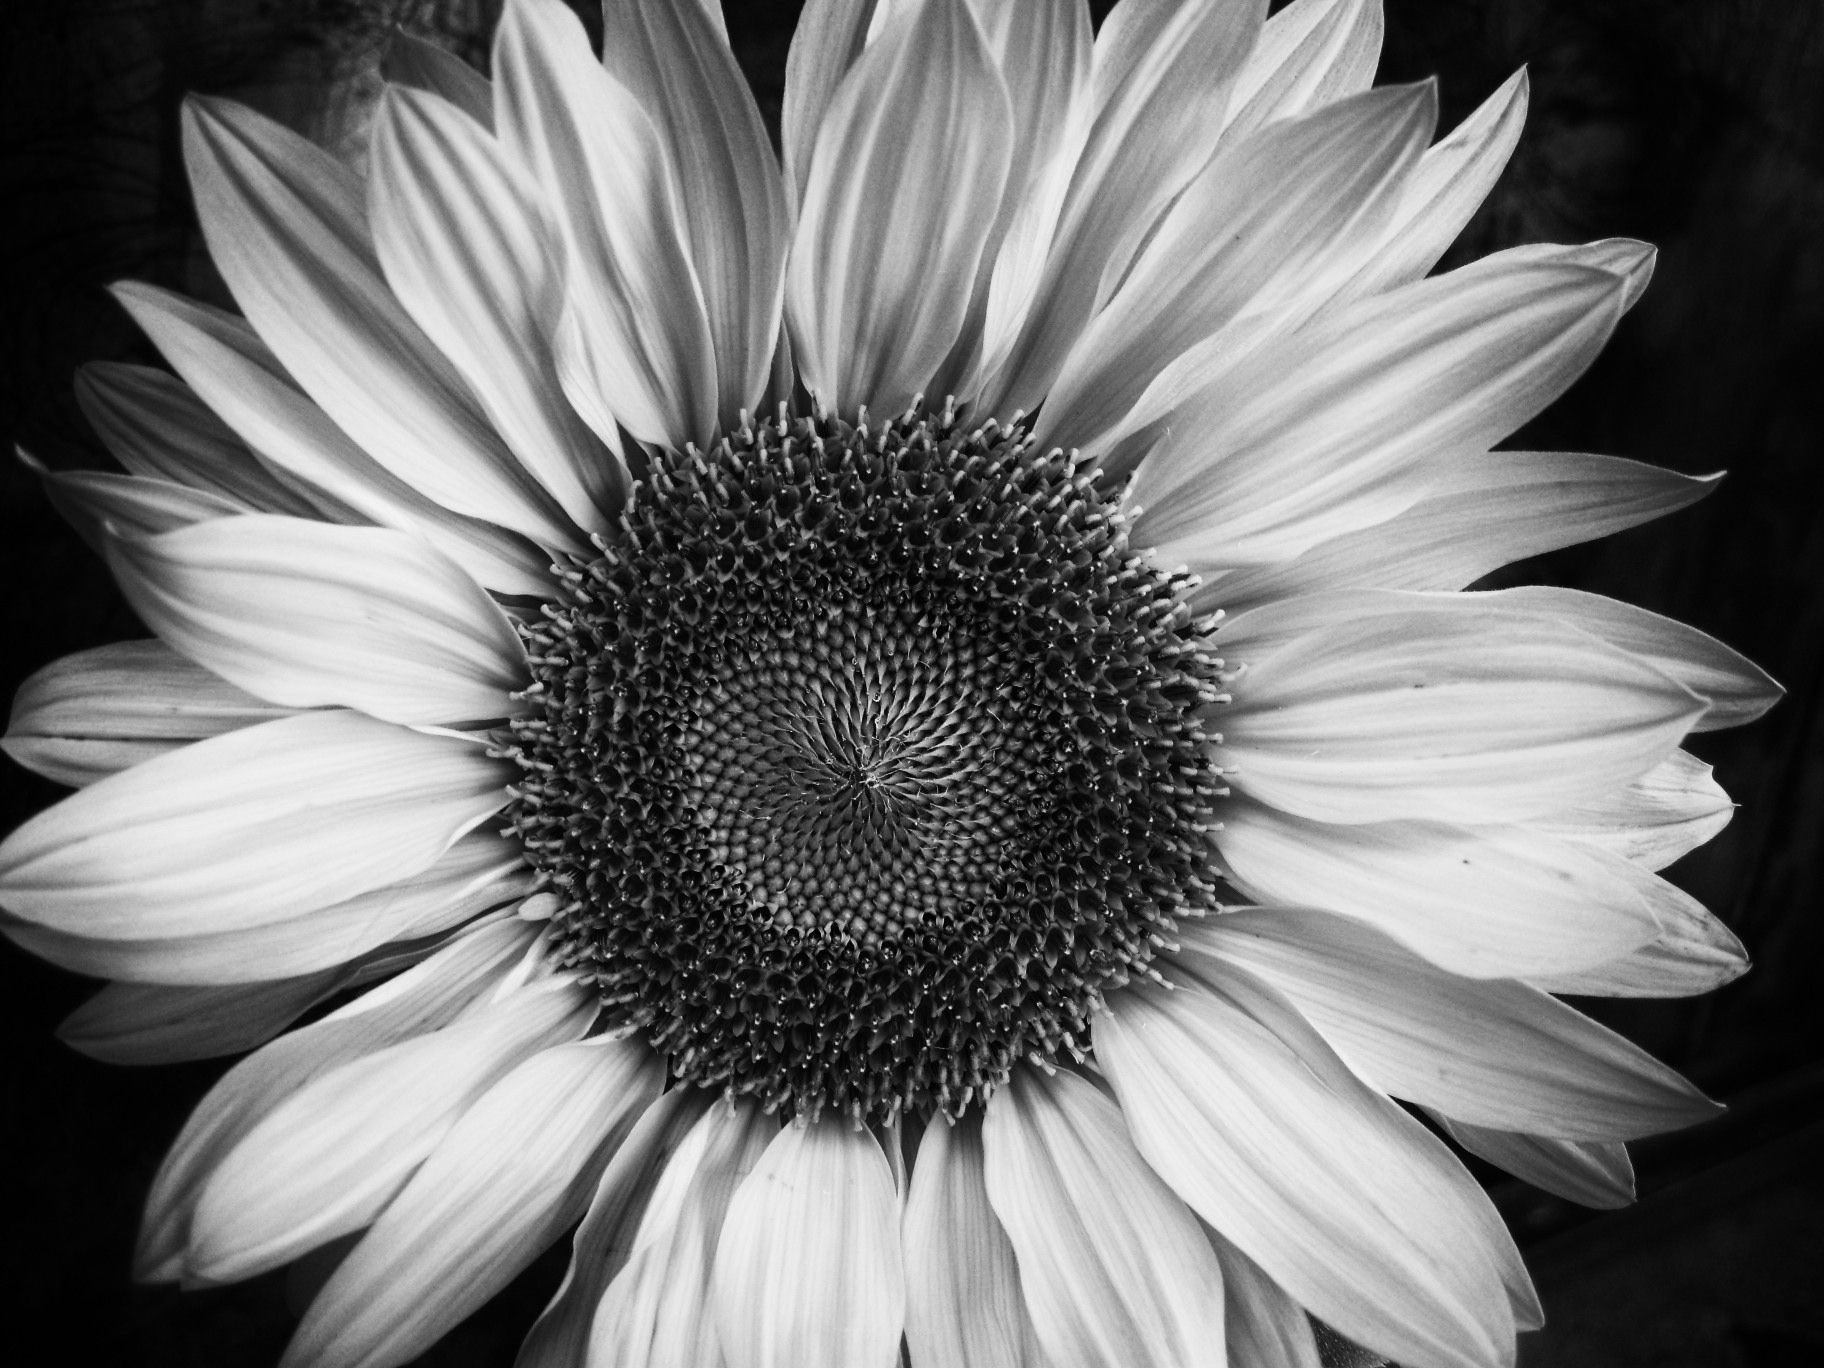 17 Best images about black and white on Pinterest | Paris black ...